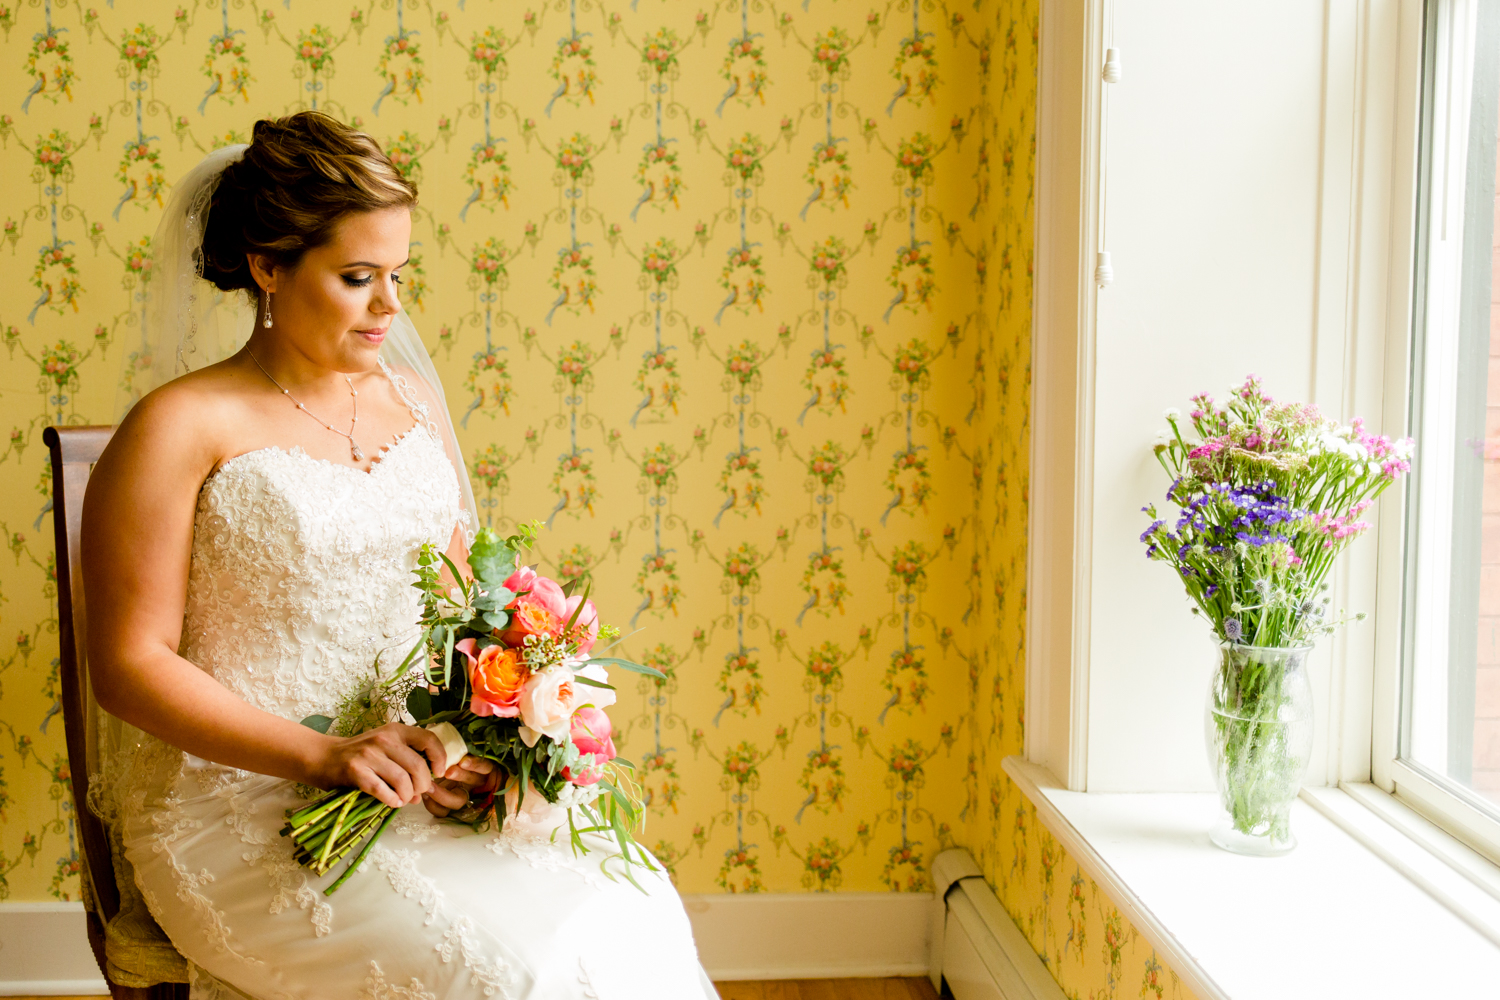 Bride sitting in front of vintage wallpaper holding flowers.